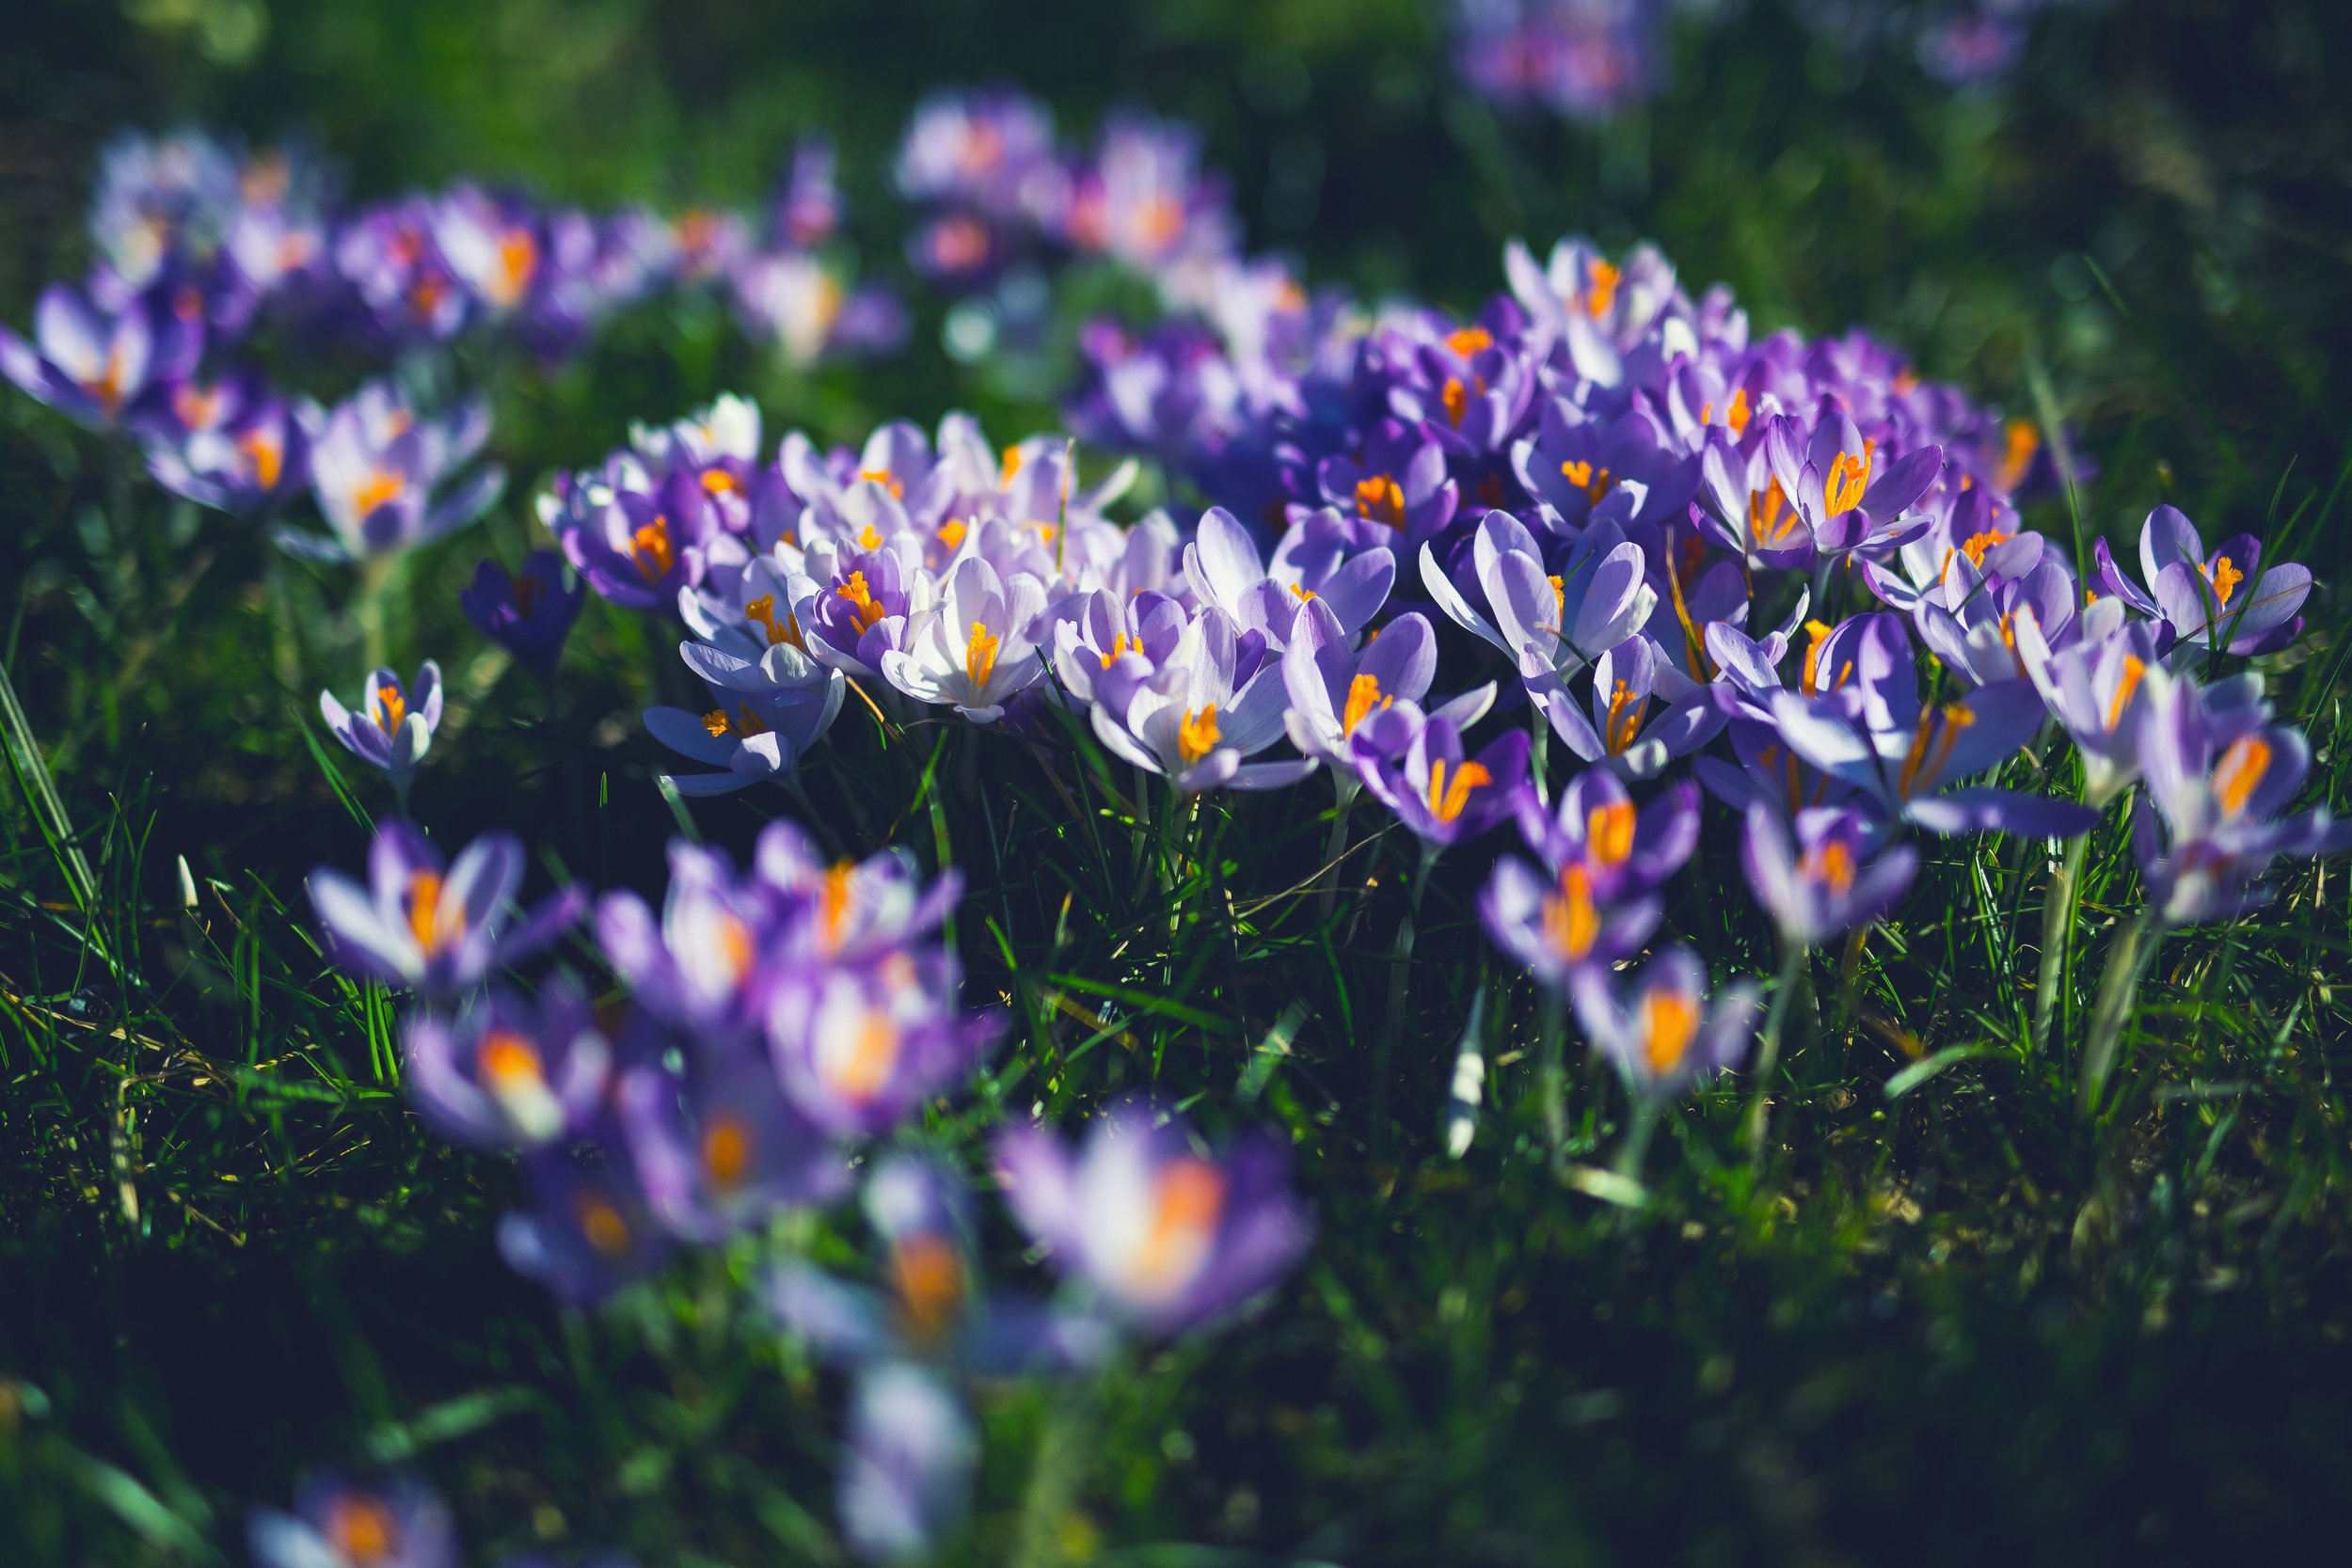 Wild Crocus flowers.